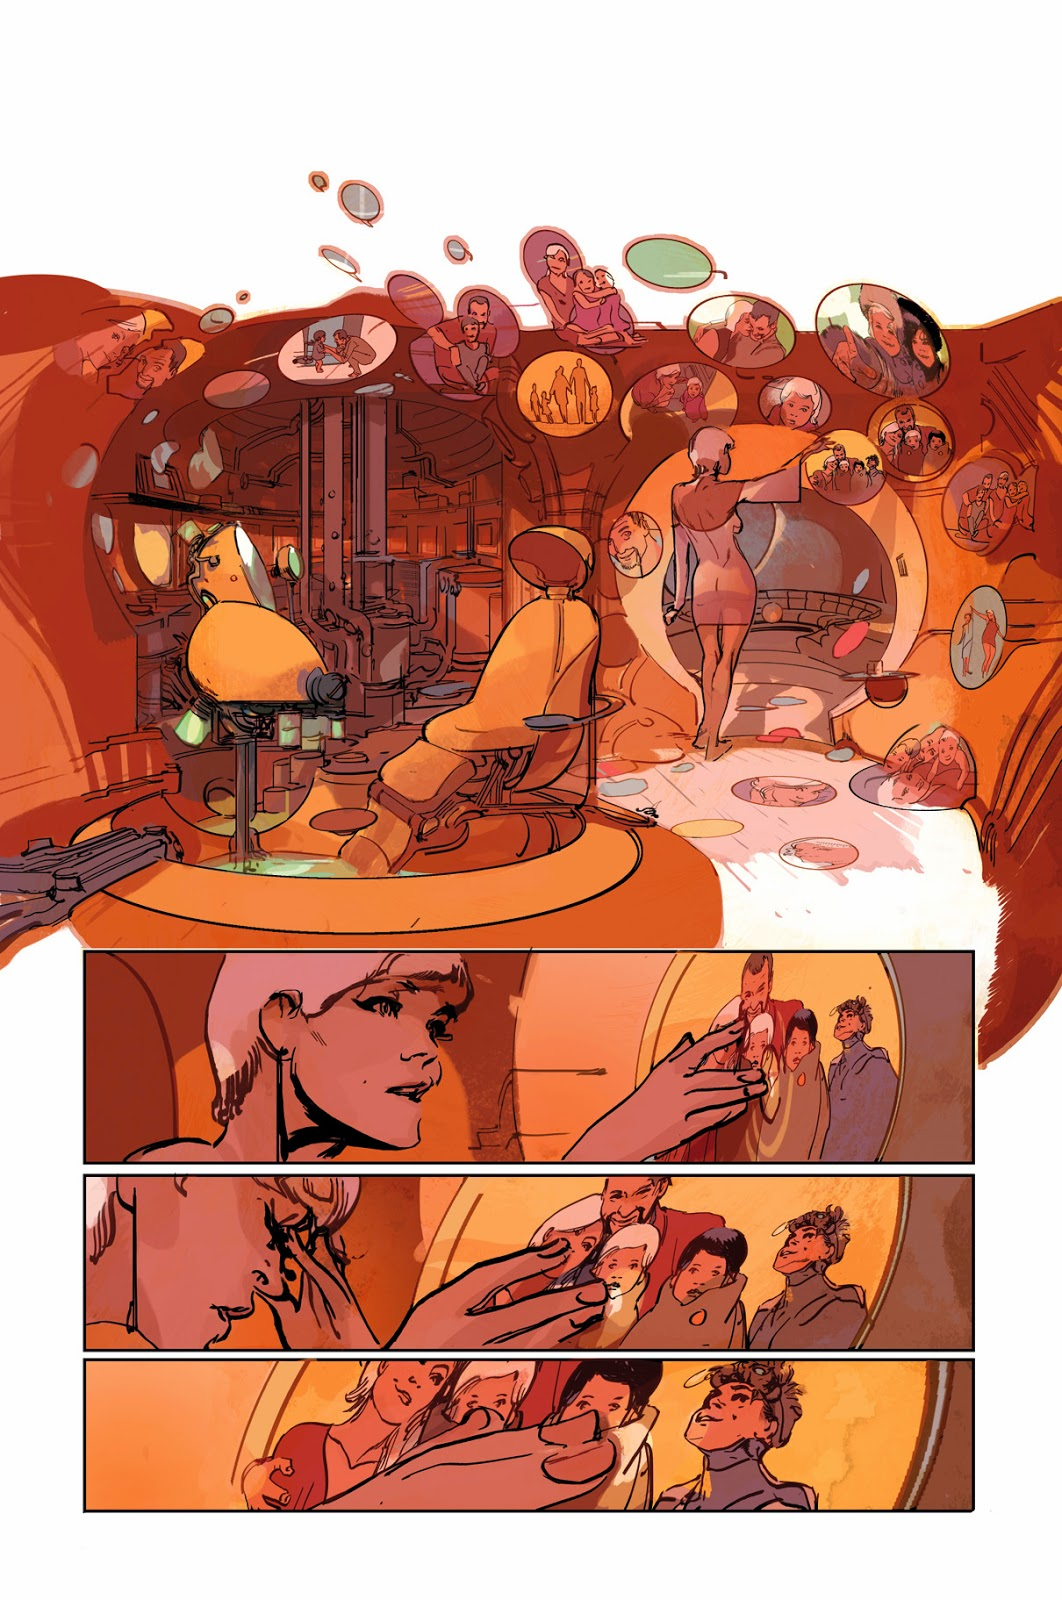 'Low' page, taken from Greg Tocchini's blog